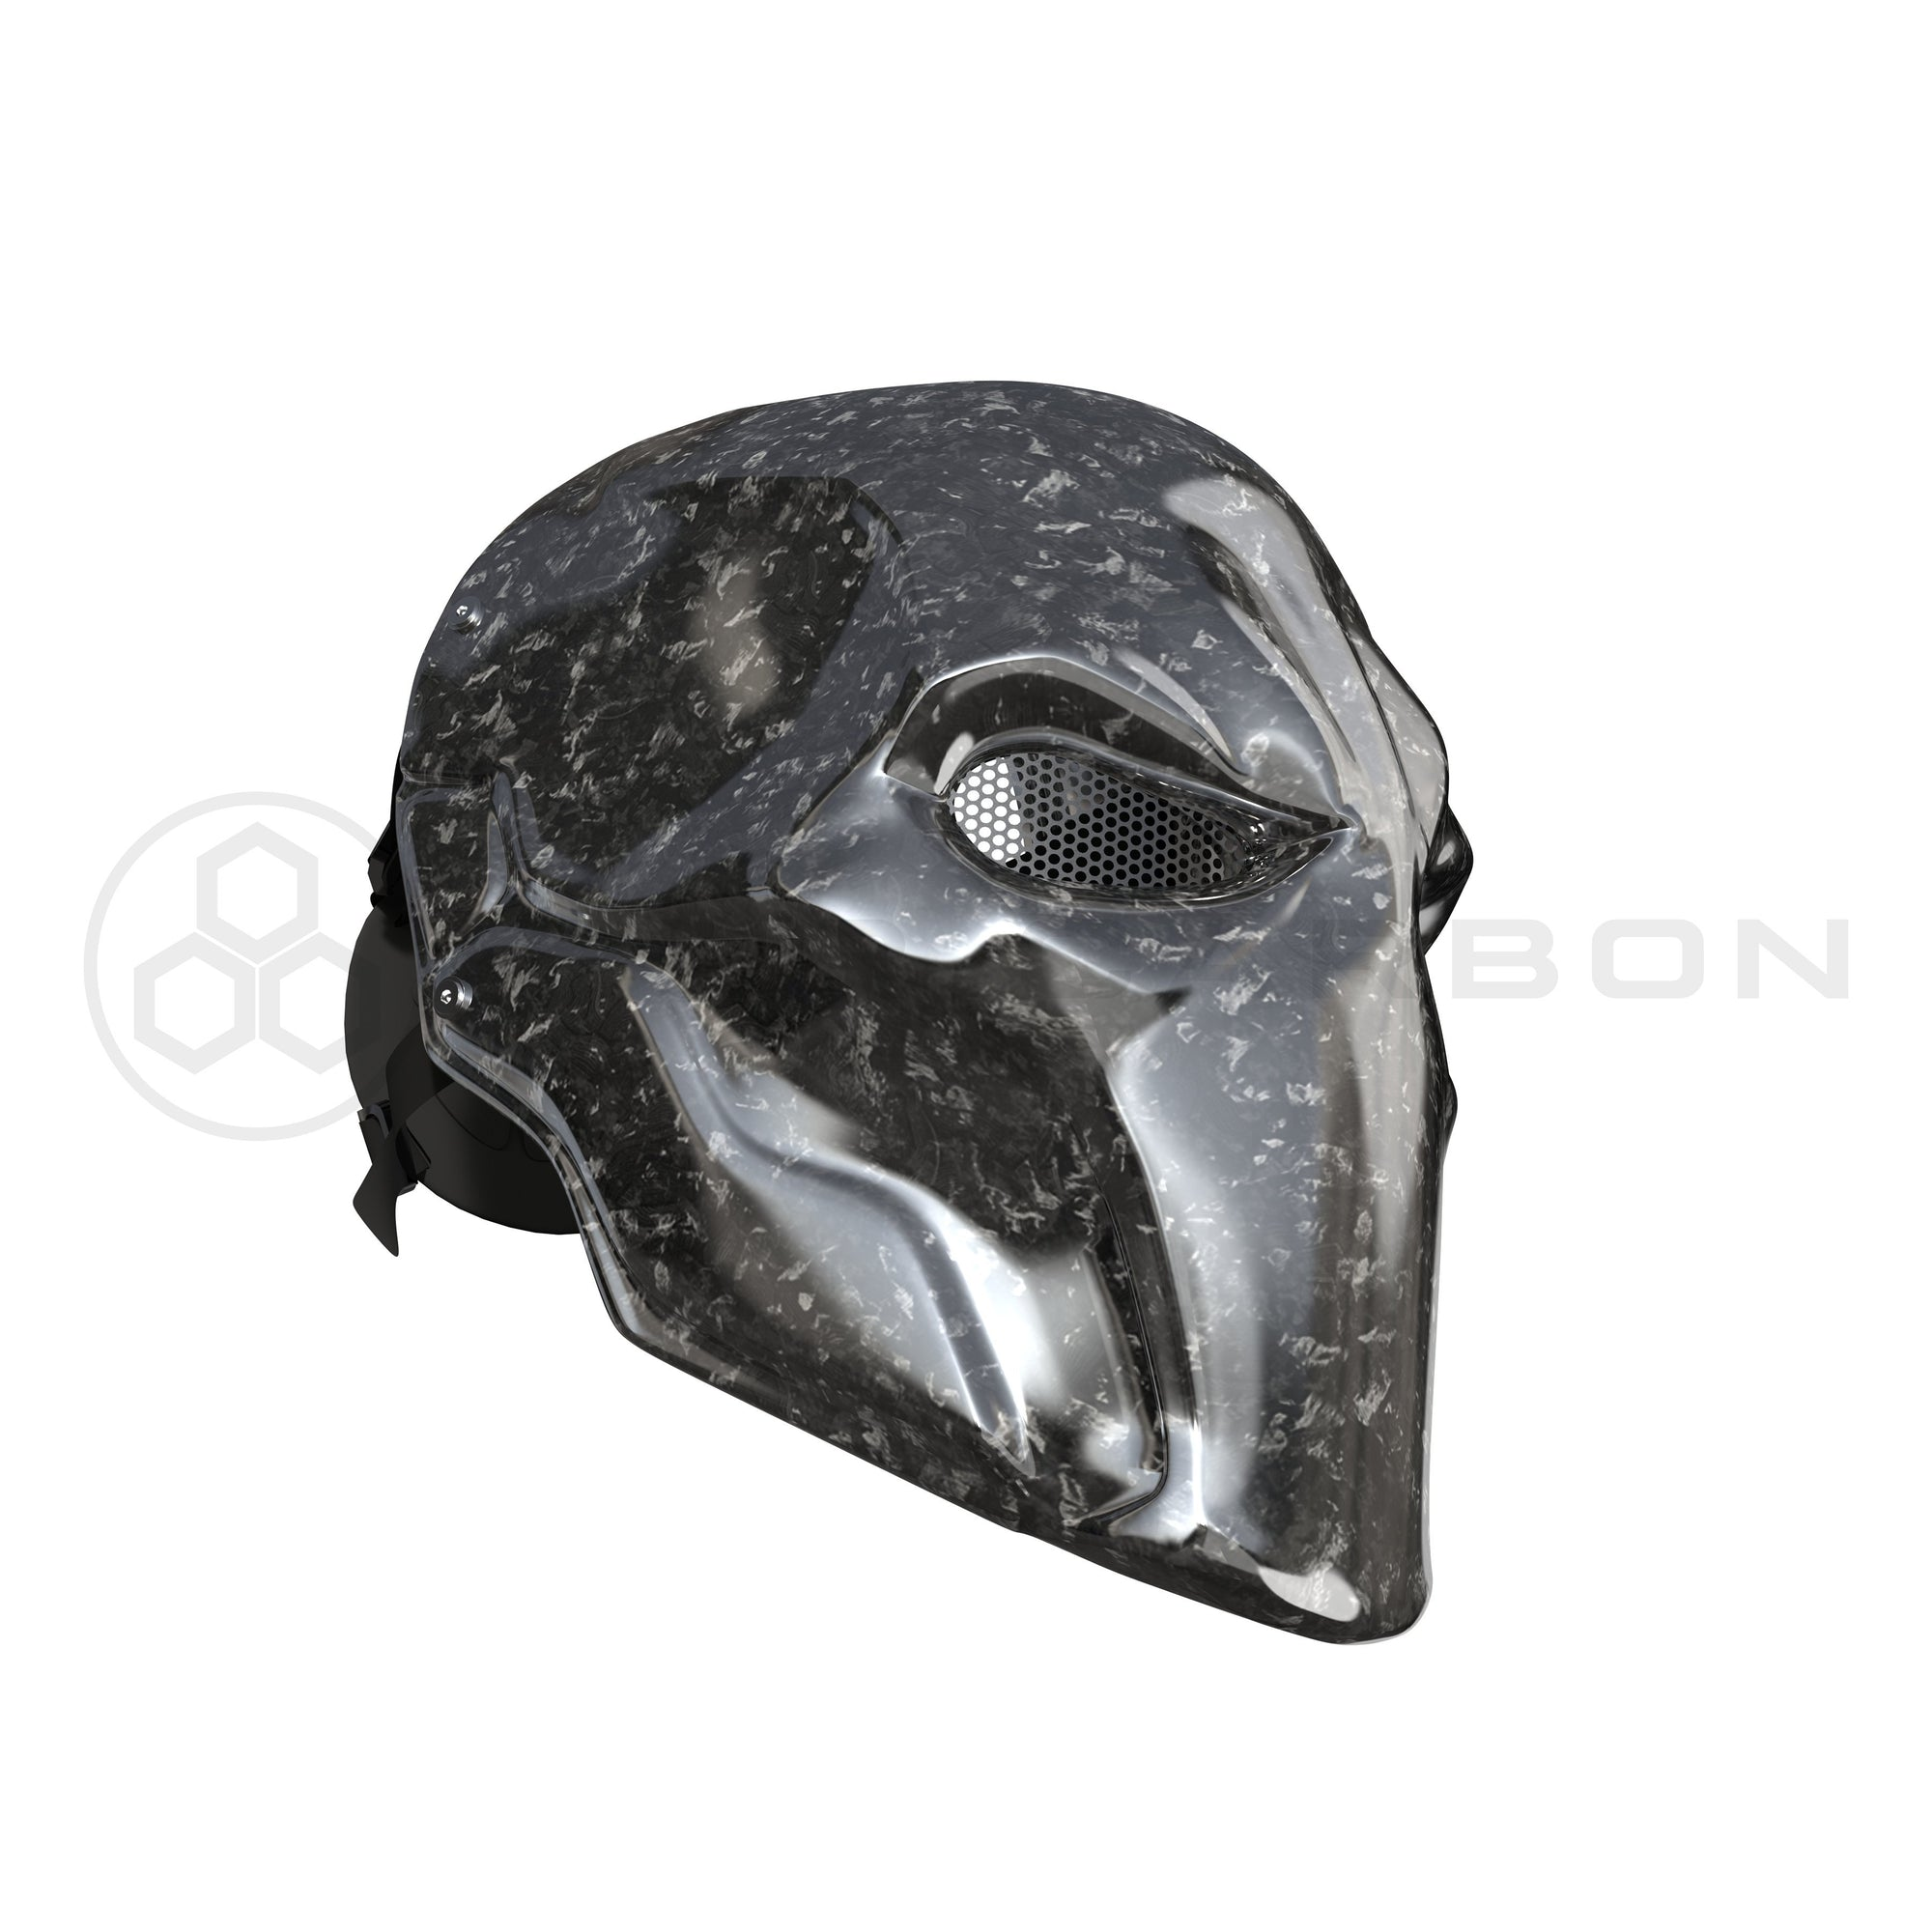 Deathstroke Mask Real Forged Carbon Fiber deathstroke Pur Carbon forgedcarbon